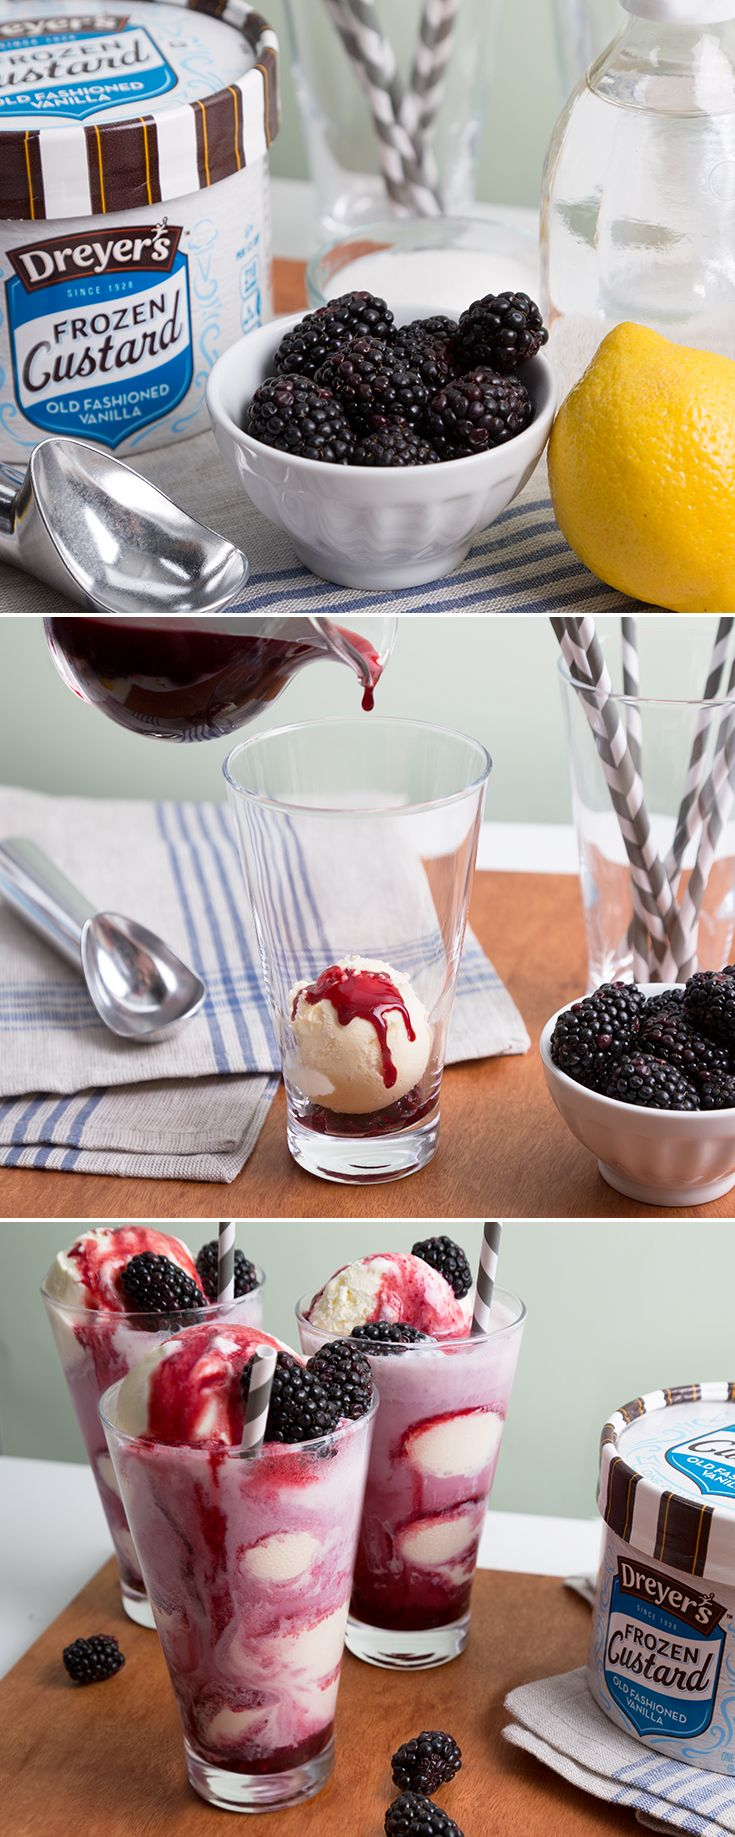 Dreyer's Frozen Custard Blackberry Sodas: Your entire family will think this frozen treat is berry delicious! Begin with a scoop of our extra thick and creamy Old Fashioned Vanilla Frozen Custard. Then, simply layer Frozen Custard and blackberry syrup (recipe below) into your glass. Top it off with soda water and blackberries! Blackberry syrup: boil down 1 cup fresh blackberries, 1/2 cup sugar, and 3 tablespoons lemon juice; then separate the liquid and the solids to make a syrup and a…